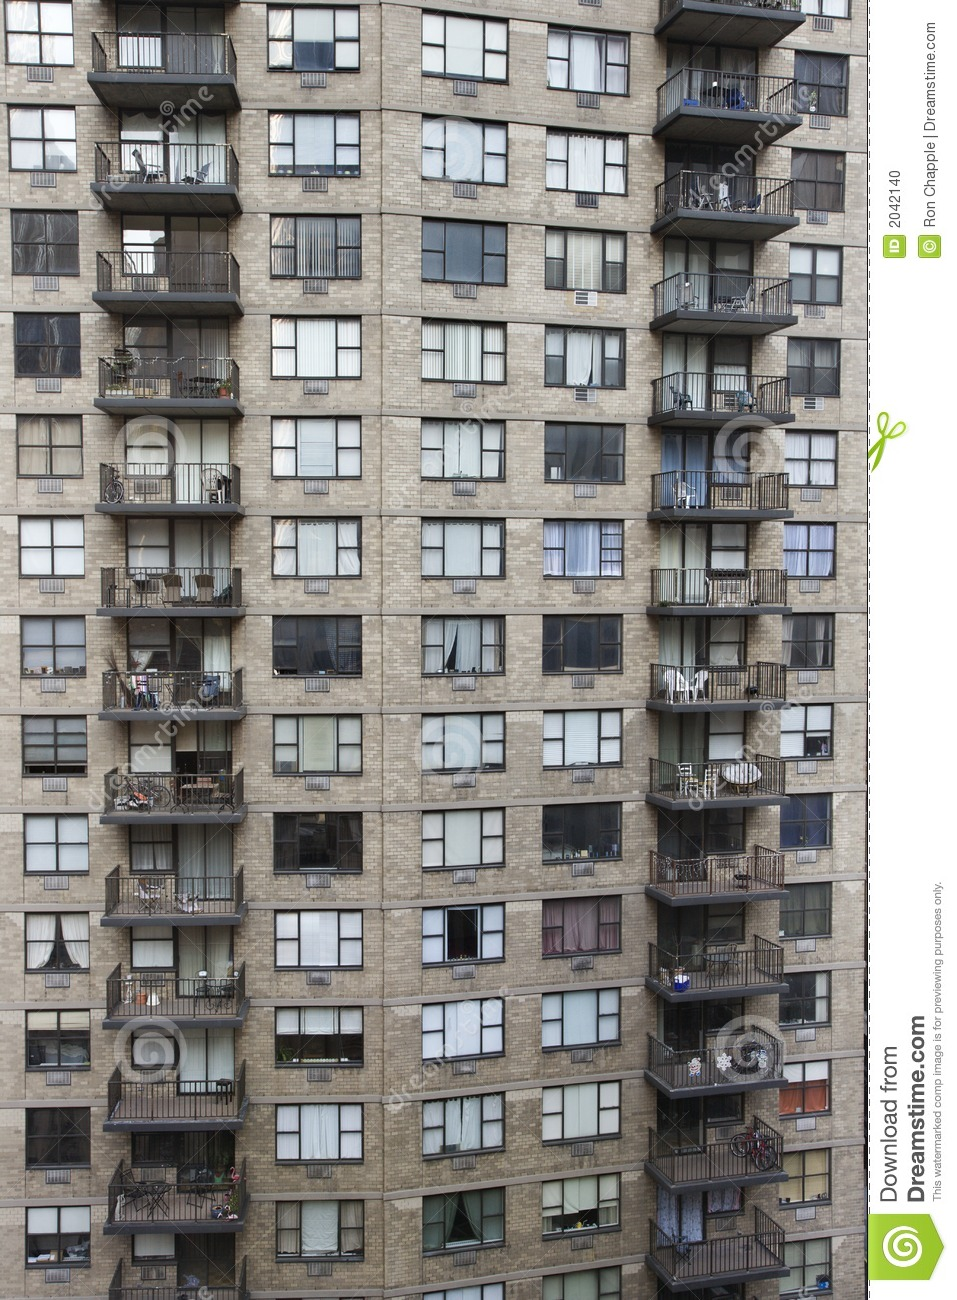 New York City Apartment Building Stock Photo Image